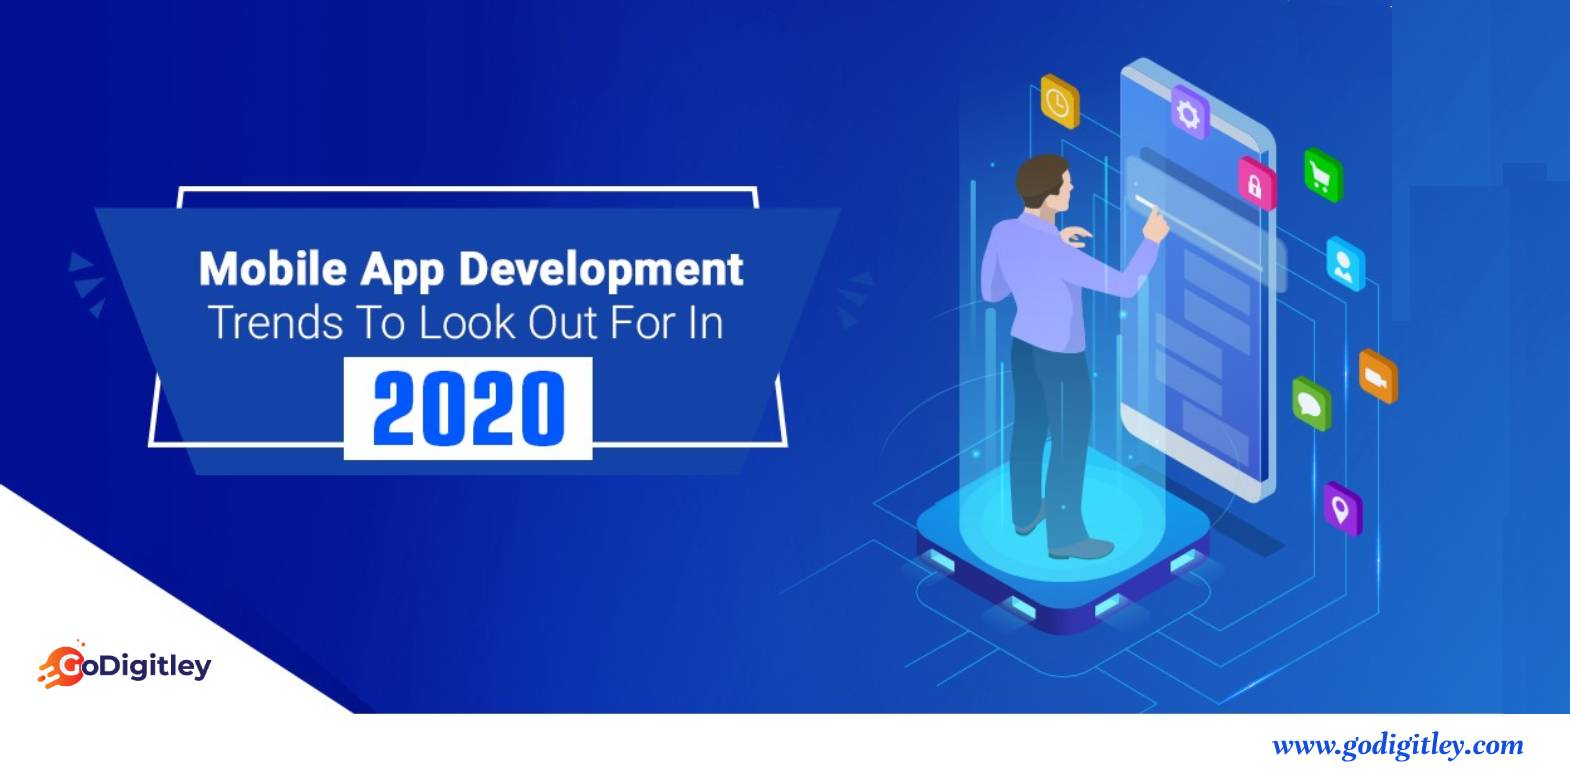 mobile app trends in 2020